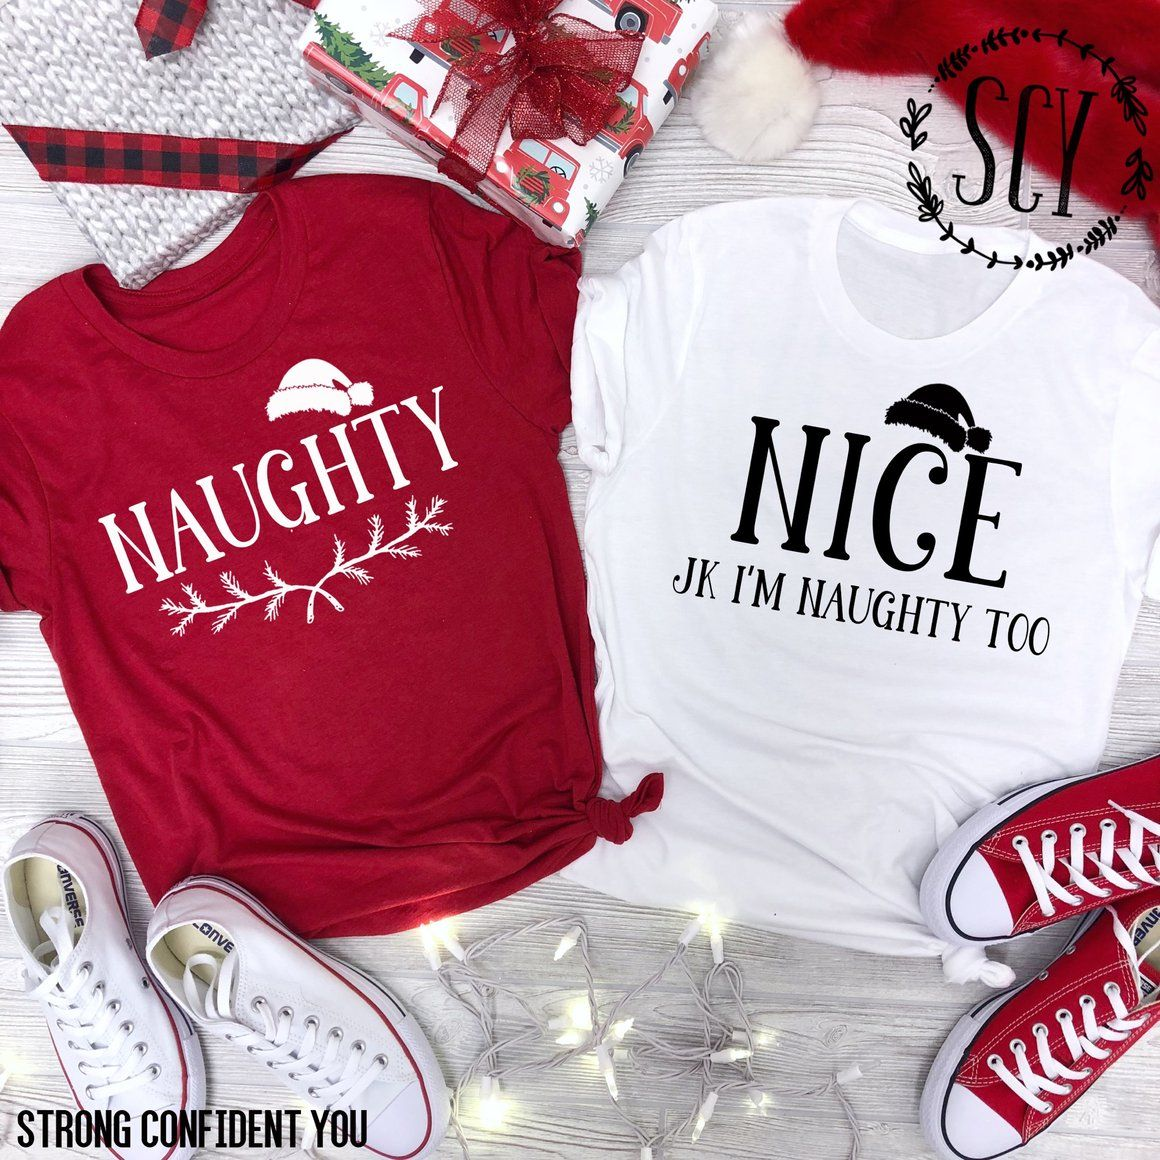 7d22093dbcb Naughty - Nice JK I m Naughty Too. Naughty or Nice. Funny Best Friend Tees. Funny  Bff Christmas Shirt. Christmas Gift Ideas. Best Friend Gift.